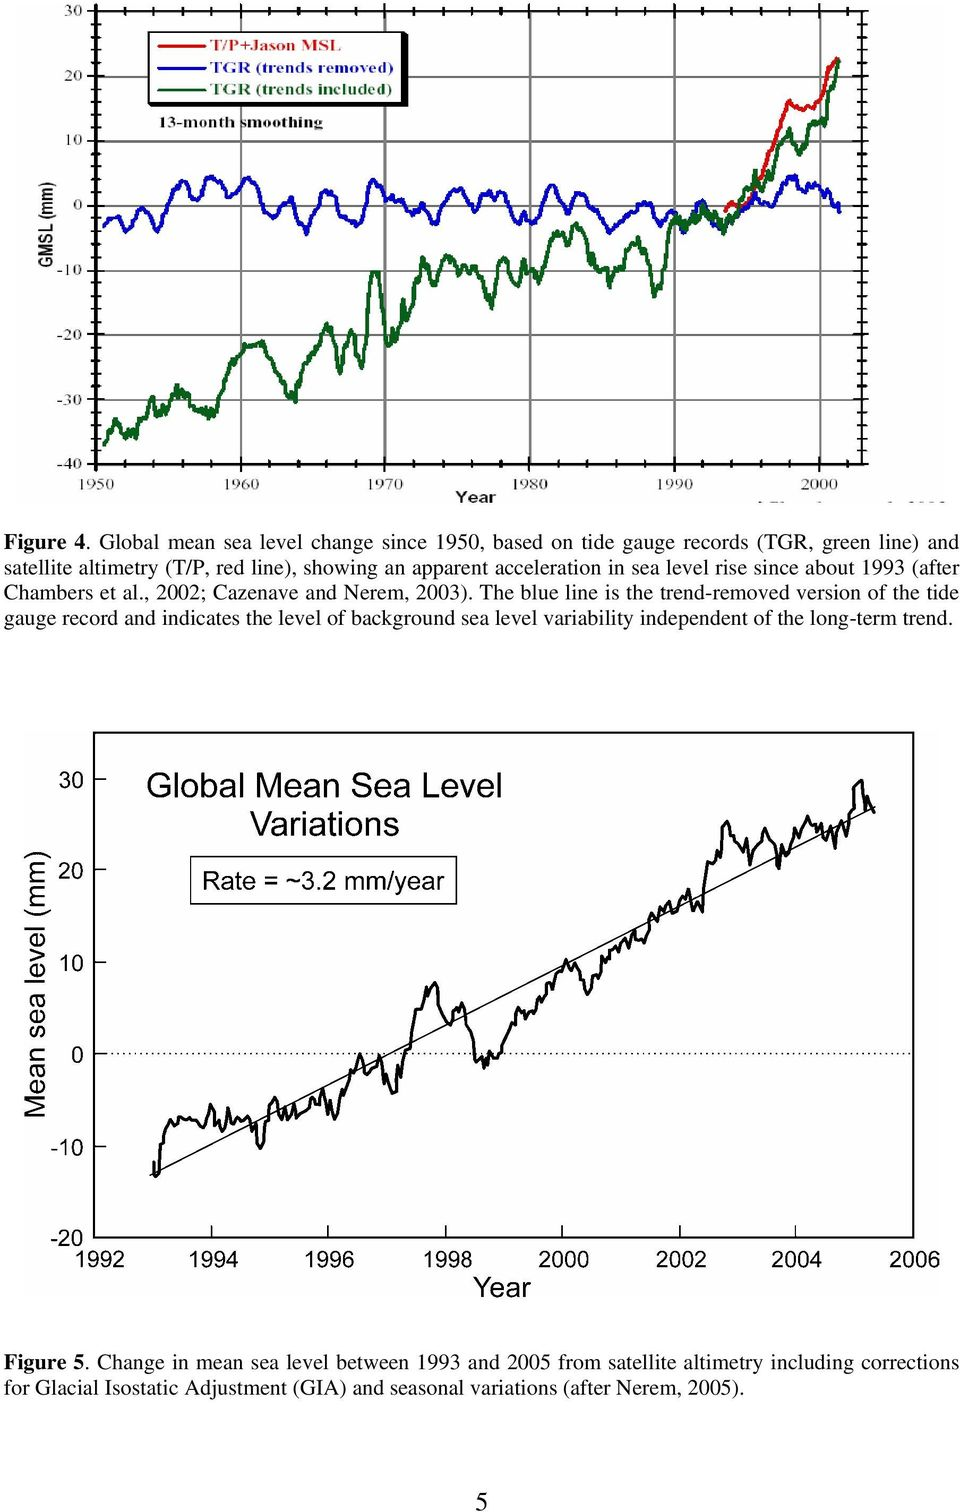 acceleration in sea level rise since about 1993 (after Chambers et al., 2002; Cazenave and Nerem, 2003).